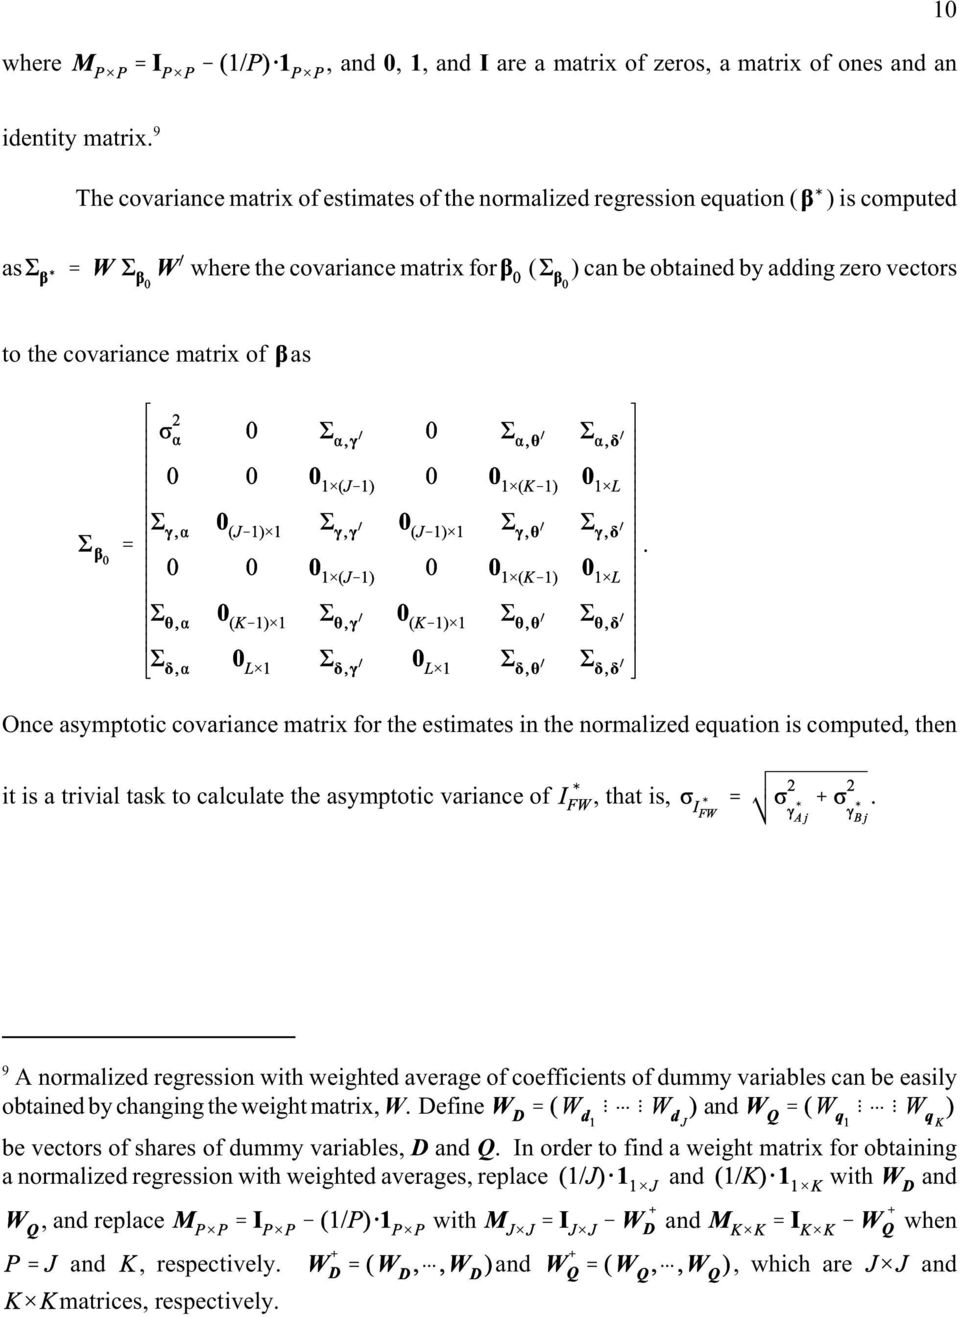 Once asymptotic covariance matrix for the estimates in the normalized equation is computed, then it is a trivial task to calculate the asymptotic variance of, that is,.